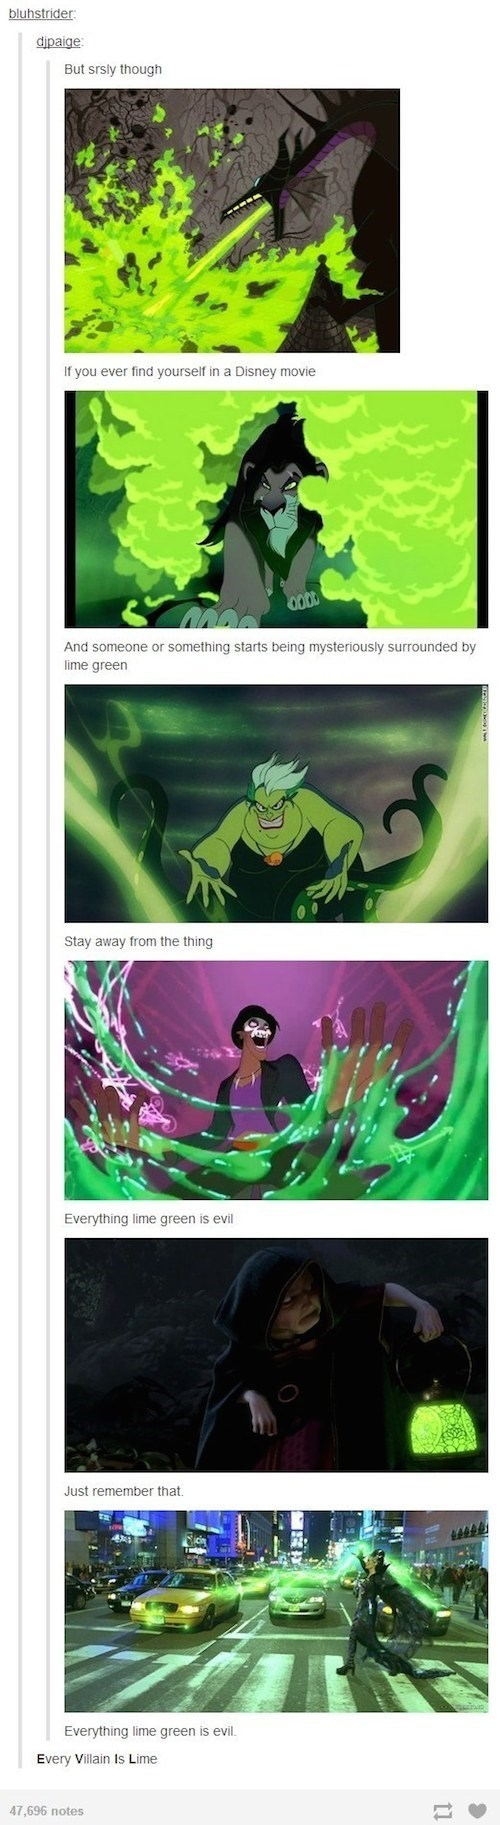 Green lantern - bluhstrider dipaige But srsly though If you ever find yourself in a Disney movie And someone or something starts being mysteriously surrounded lime green Stay away from the thing Everything lime green is evil Just remember that. Everything lime green is evil. Every Villain Is Lime 47,696 notes